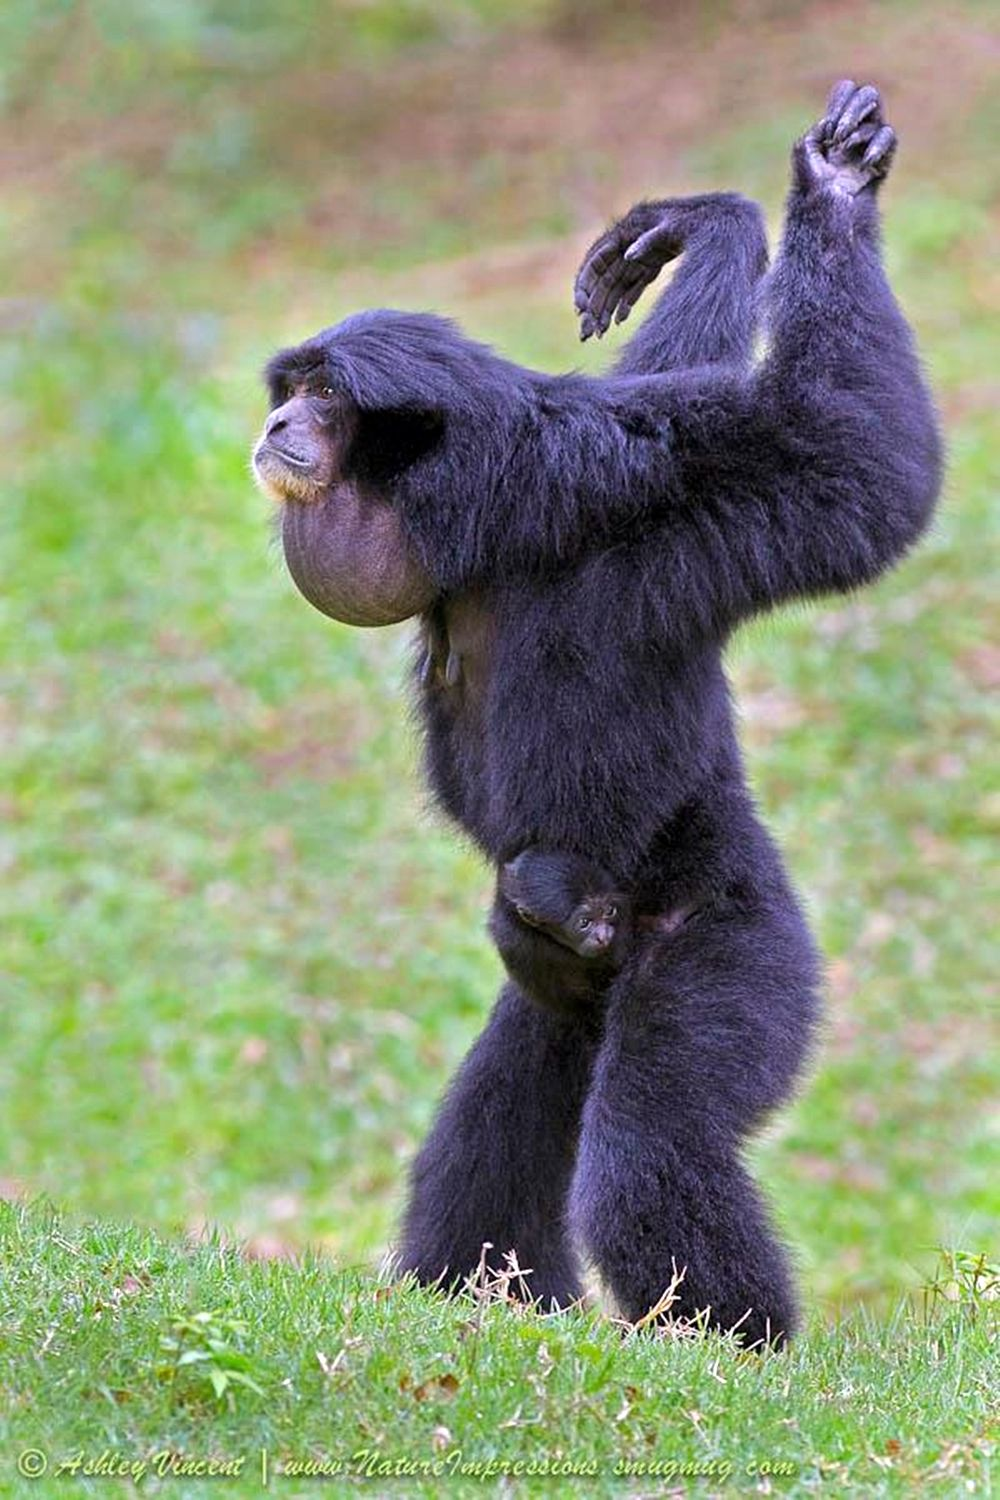 Howler Monkey | Singe hurleur, Animaux exotiques, Animaux sauvages